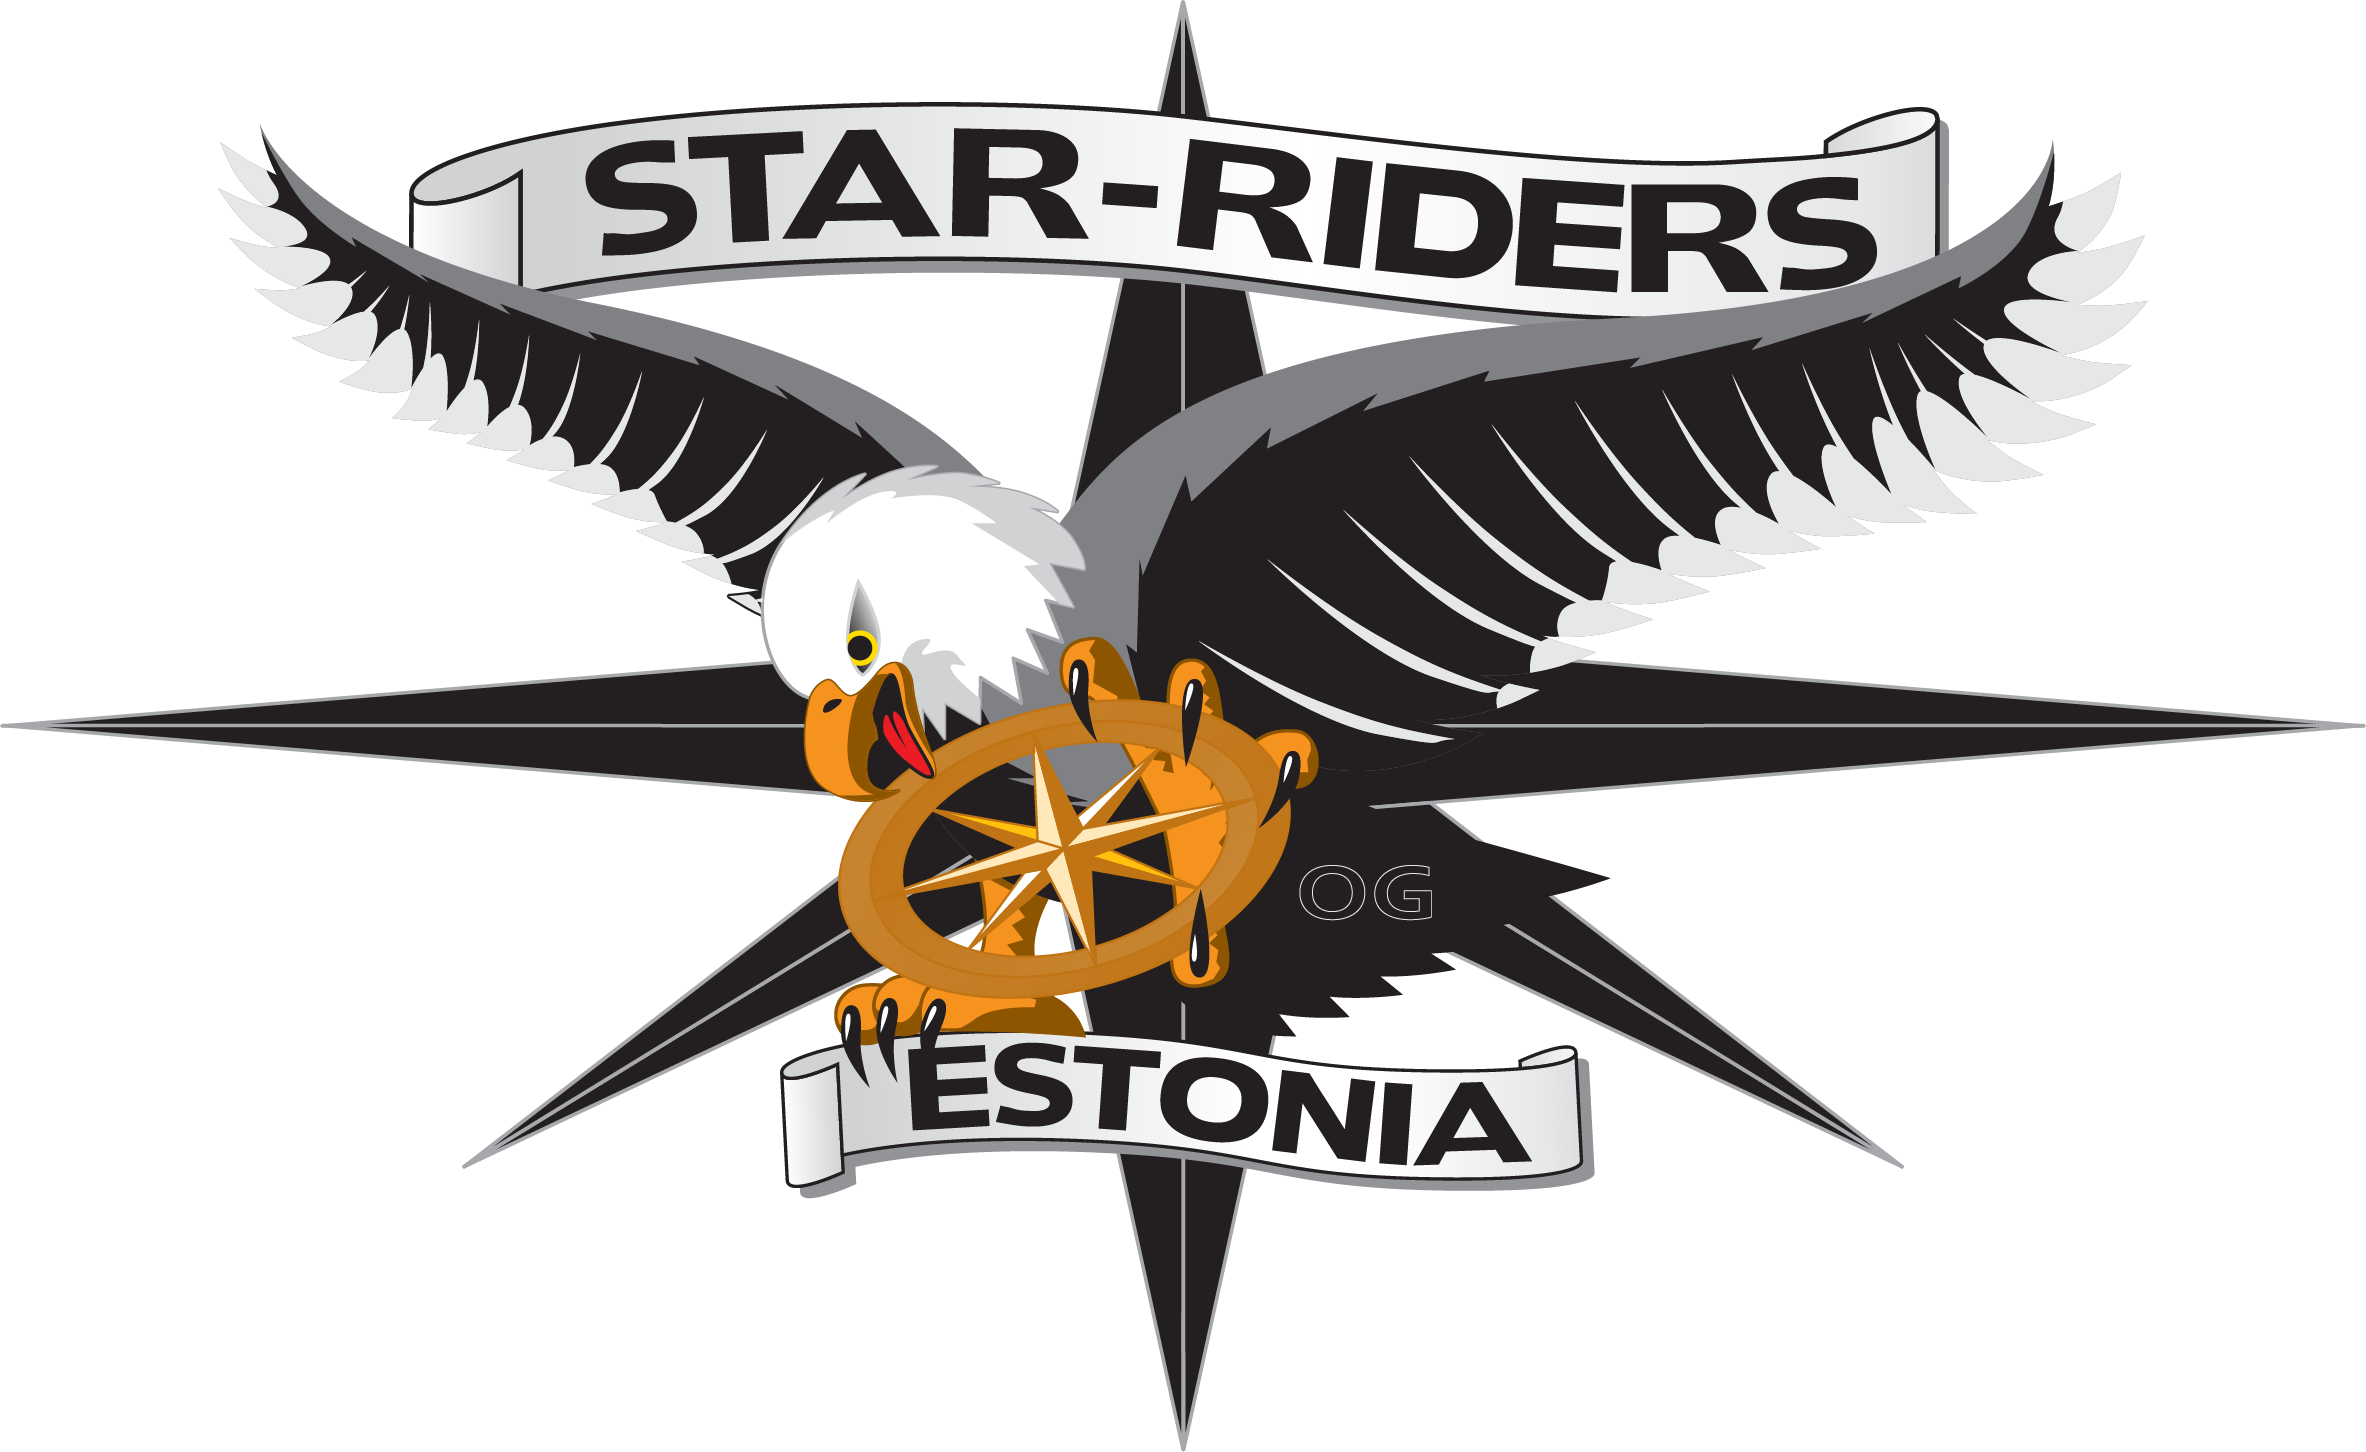 Star-Riders Estonia